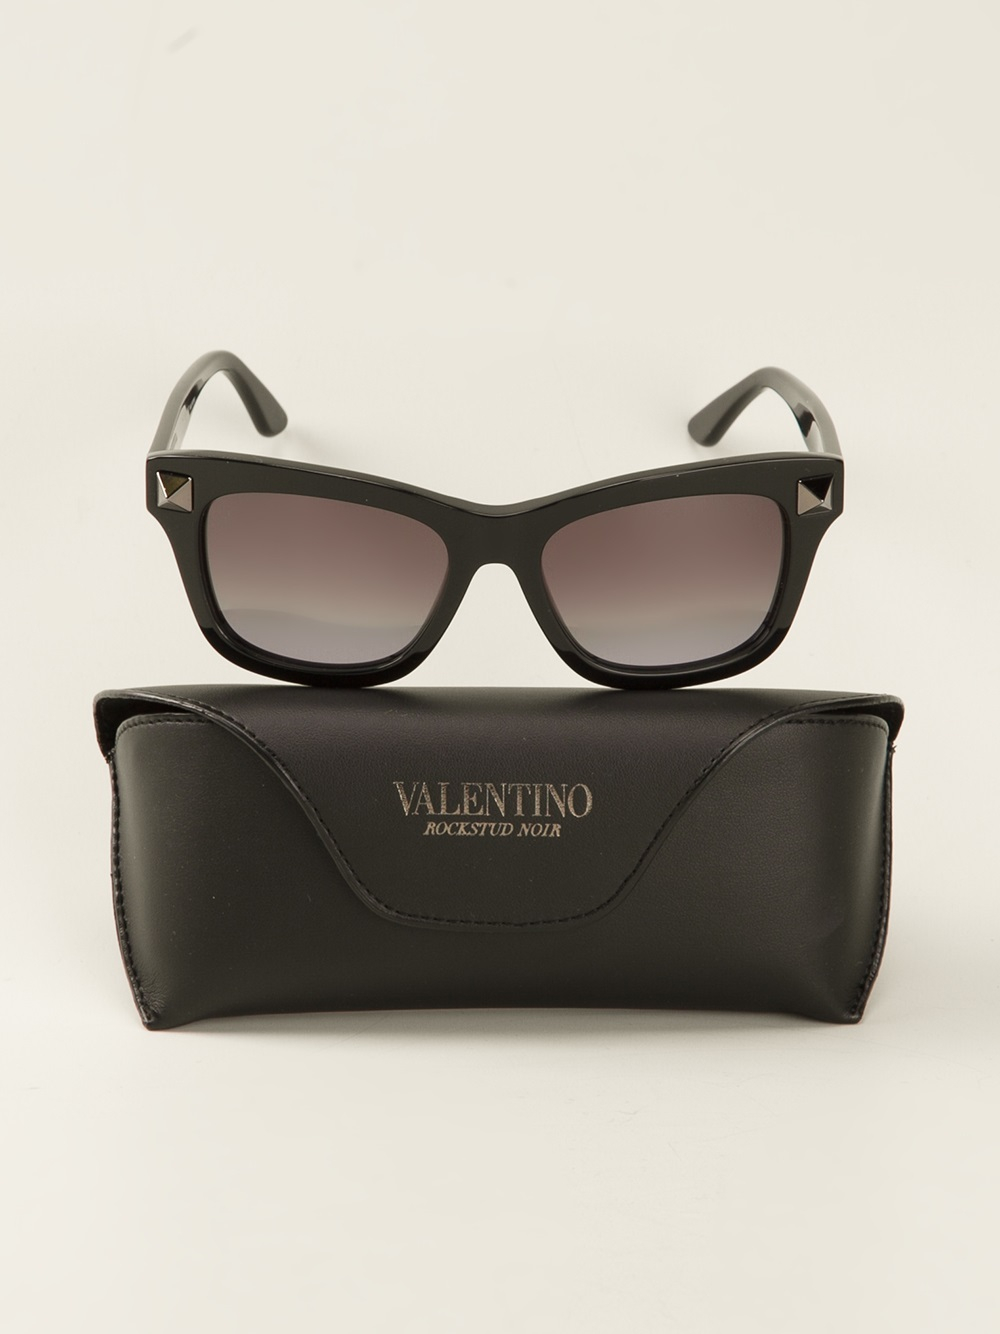 96d8d5a779cc Valentino Studded Sunglasses in Black - Lyst